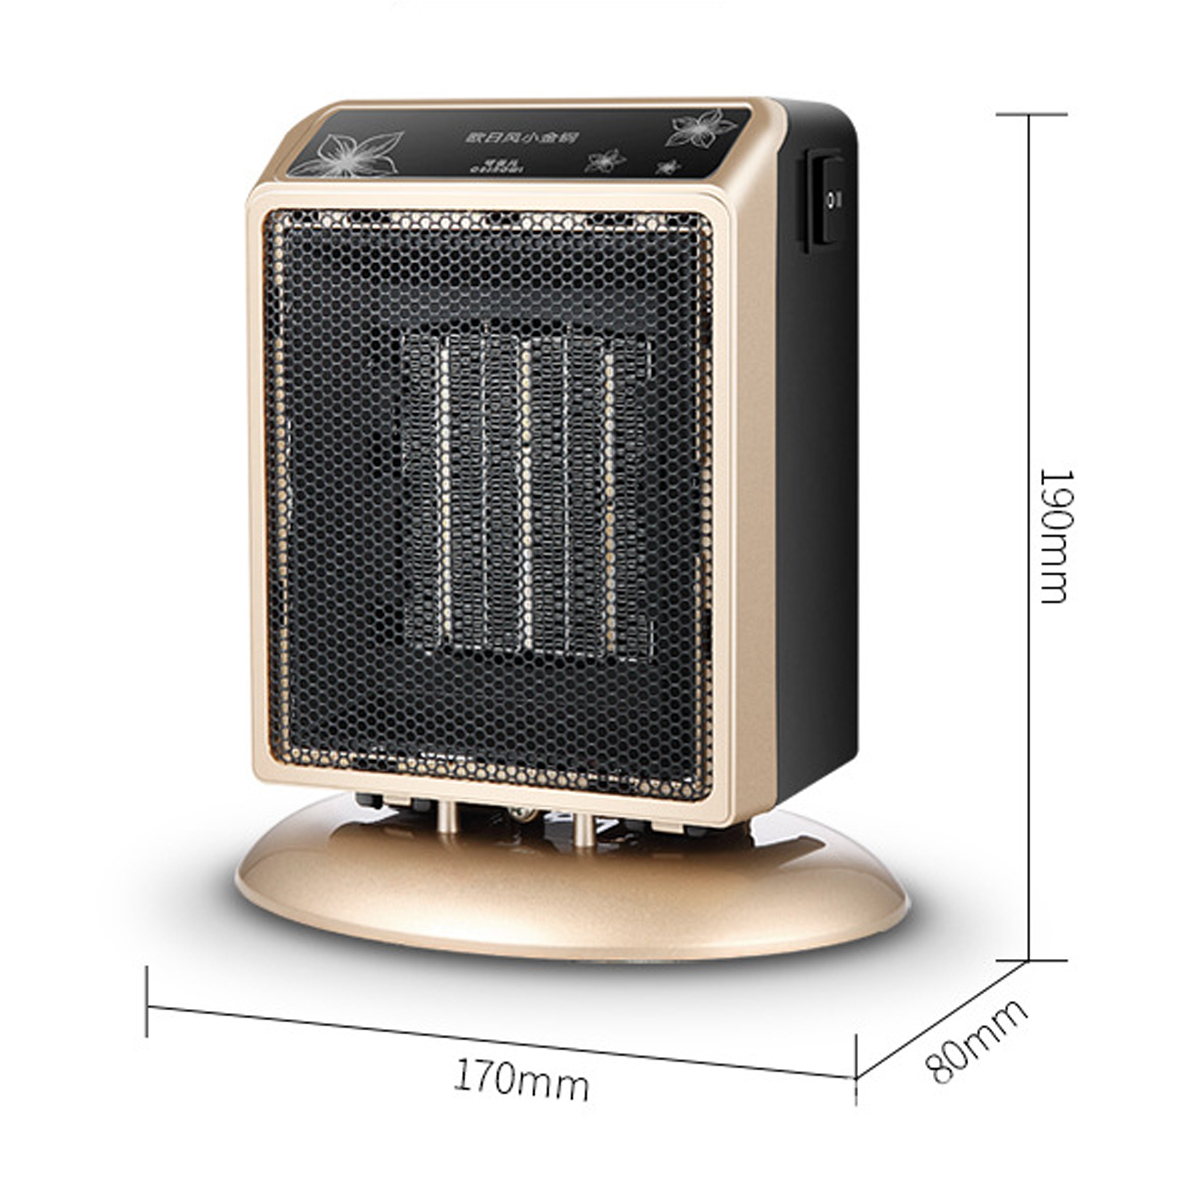 110V 500W Home Heater Fan Adjustable Air Conditioner Portable Office Air Warmer